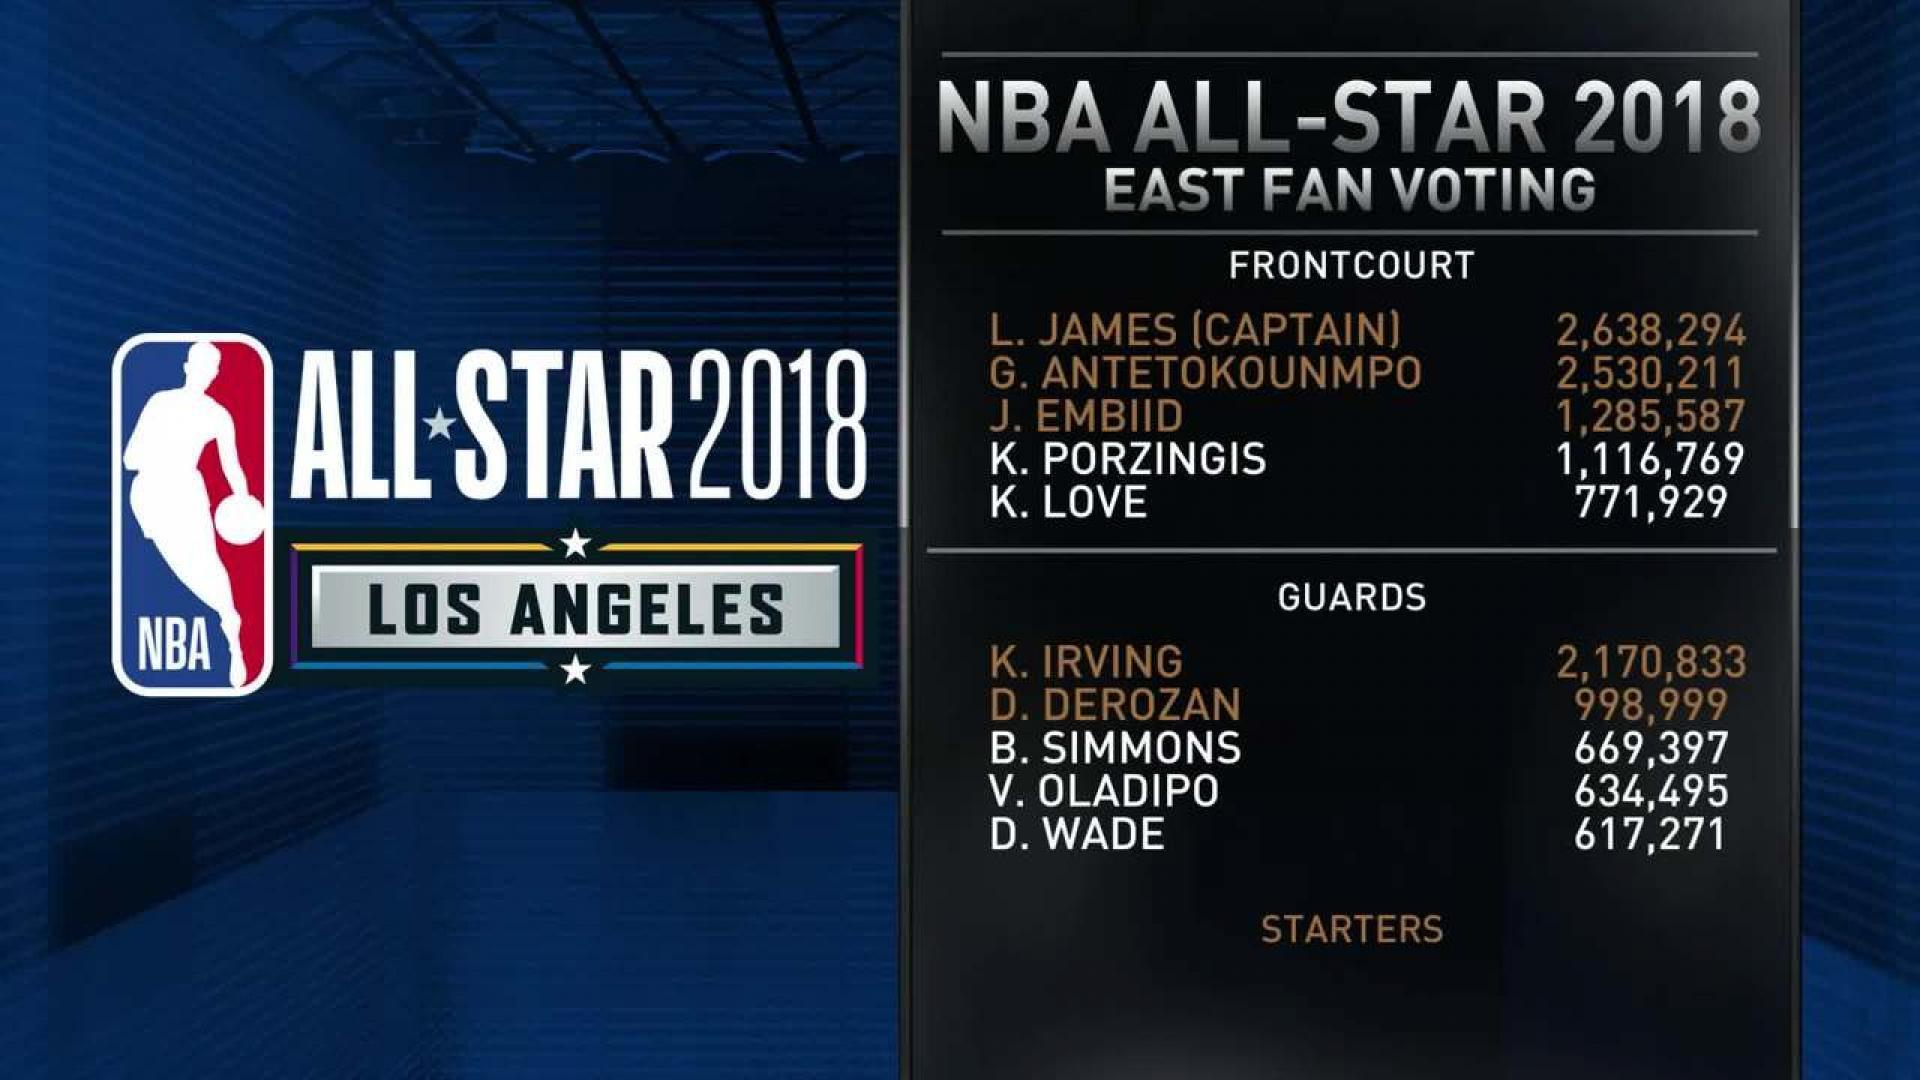 Selection Of Stars! NBA's 2018 All-Star Starters Are Revealed